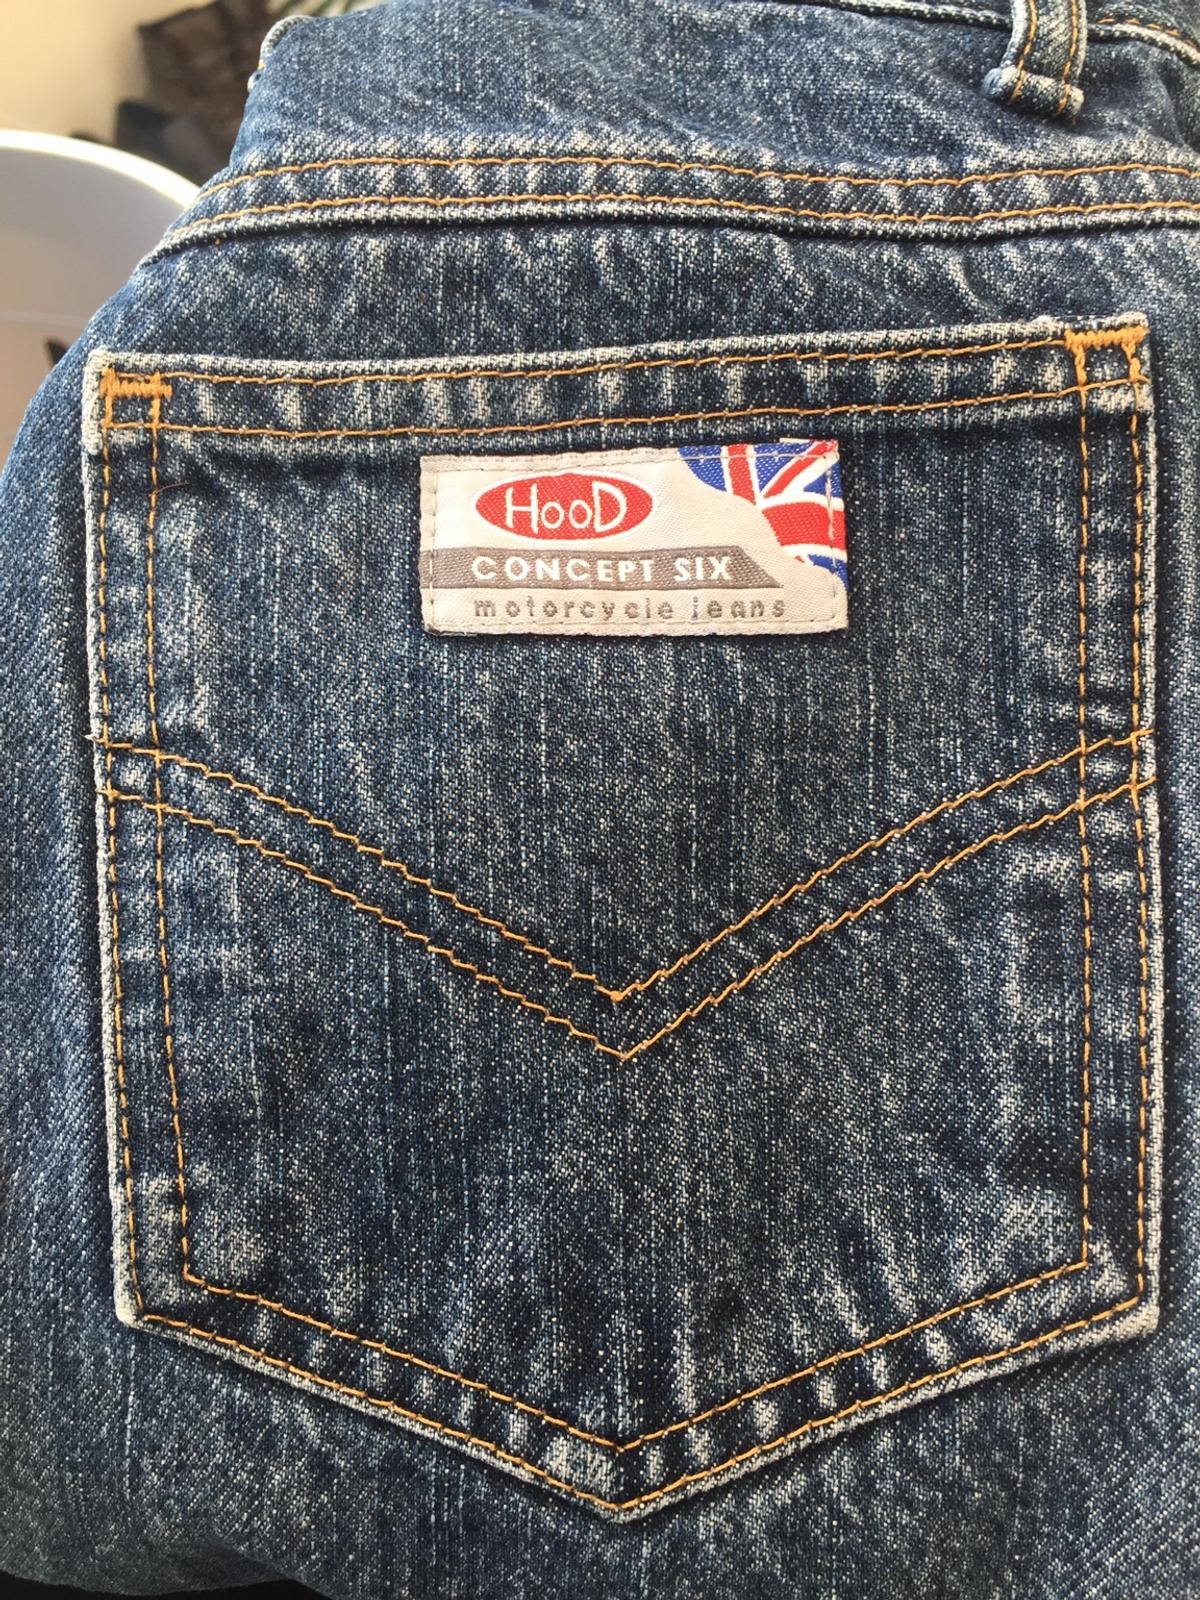 Used but in good condition. Ladies size 8 motorcycle Jeans.